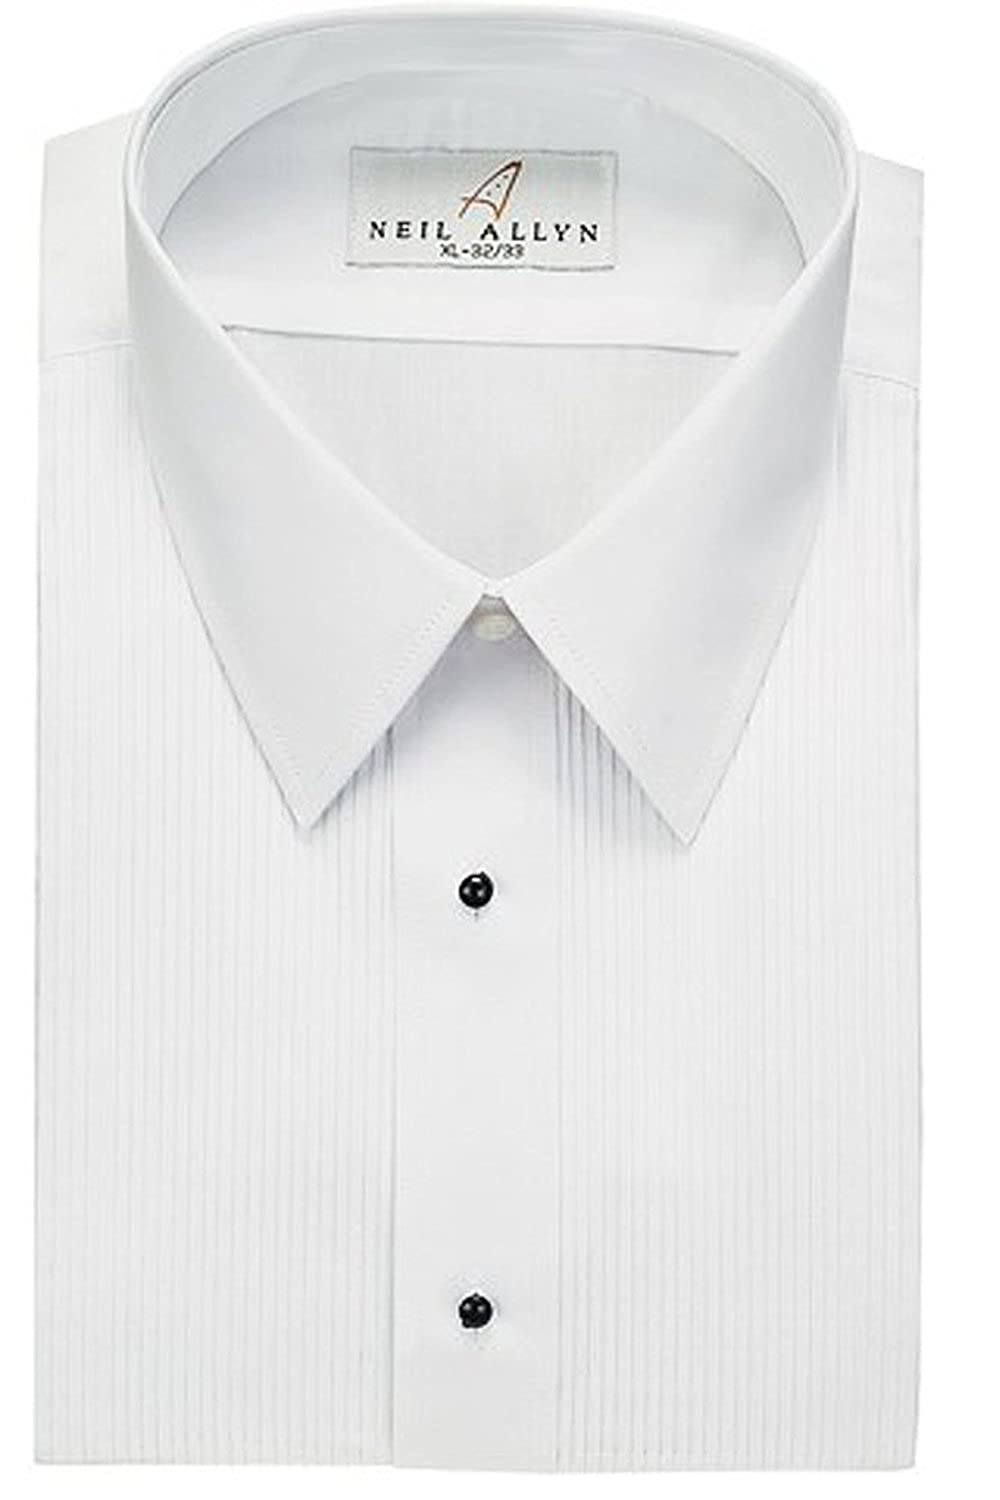 Neil Allyn Men's Tuxedo Shirt Poly/Cotton Laydown Collar 1/8 Inch Pleat